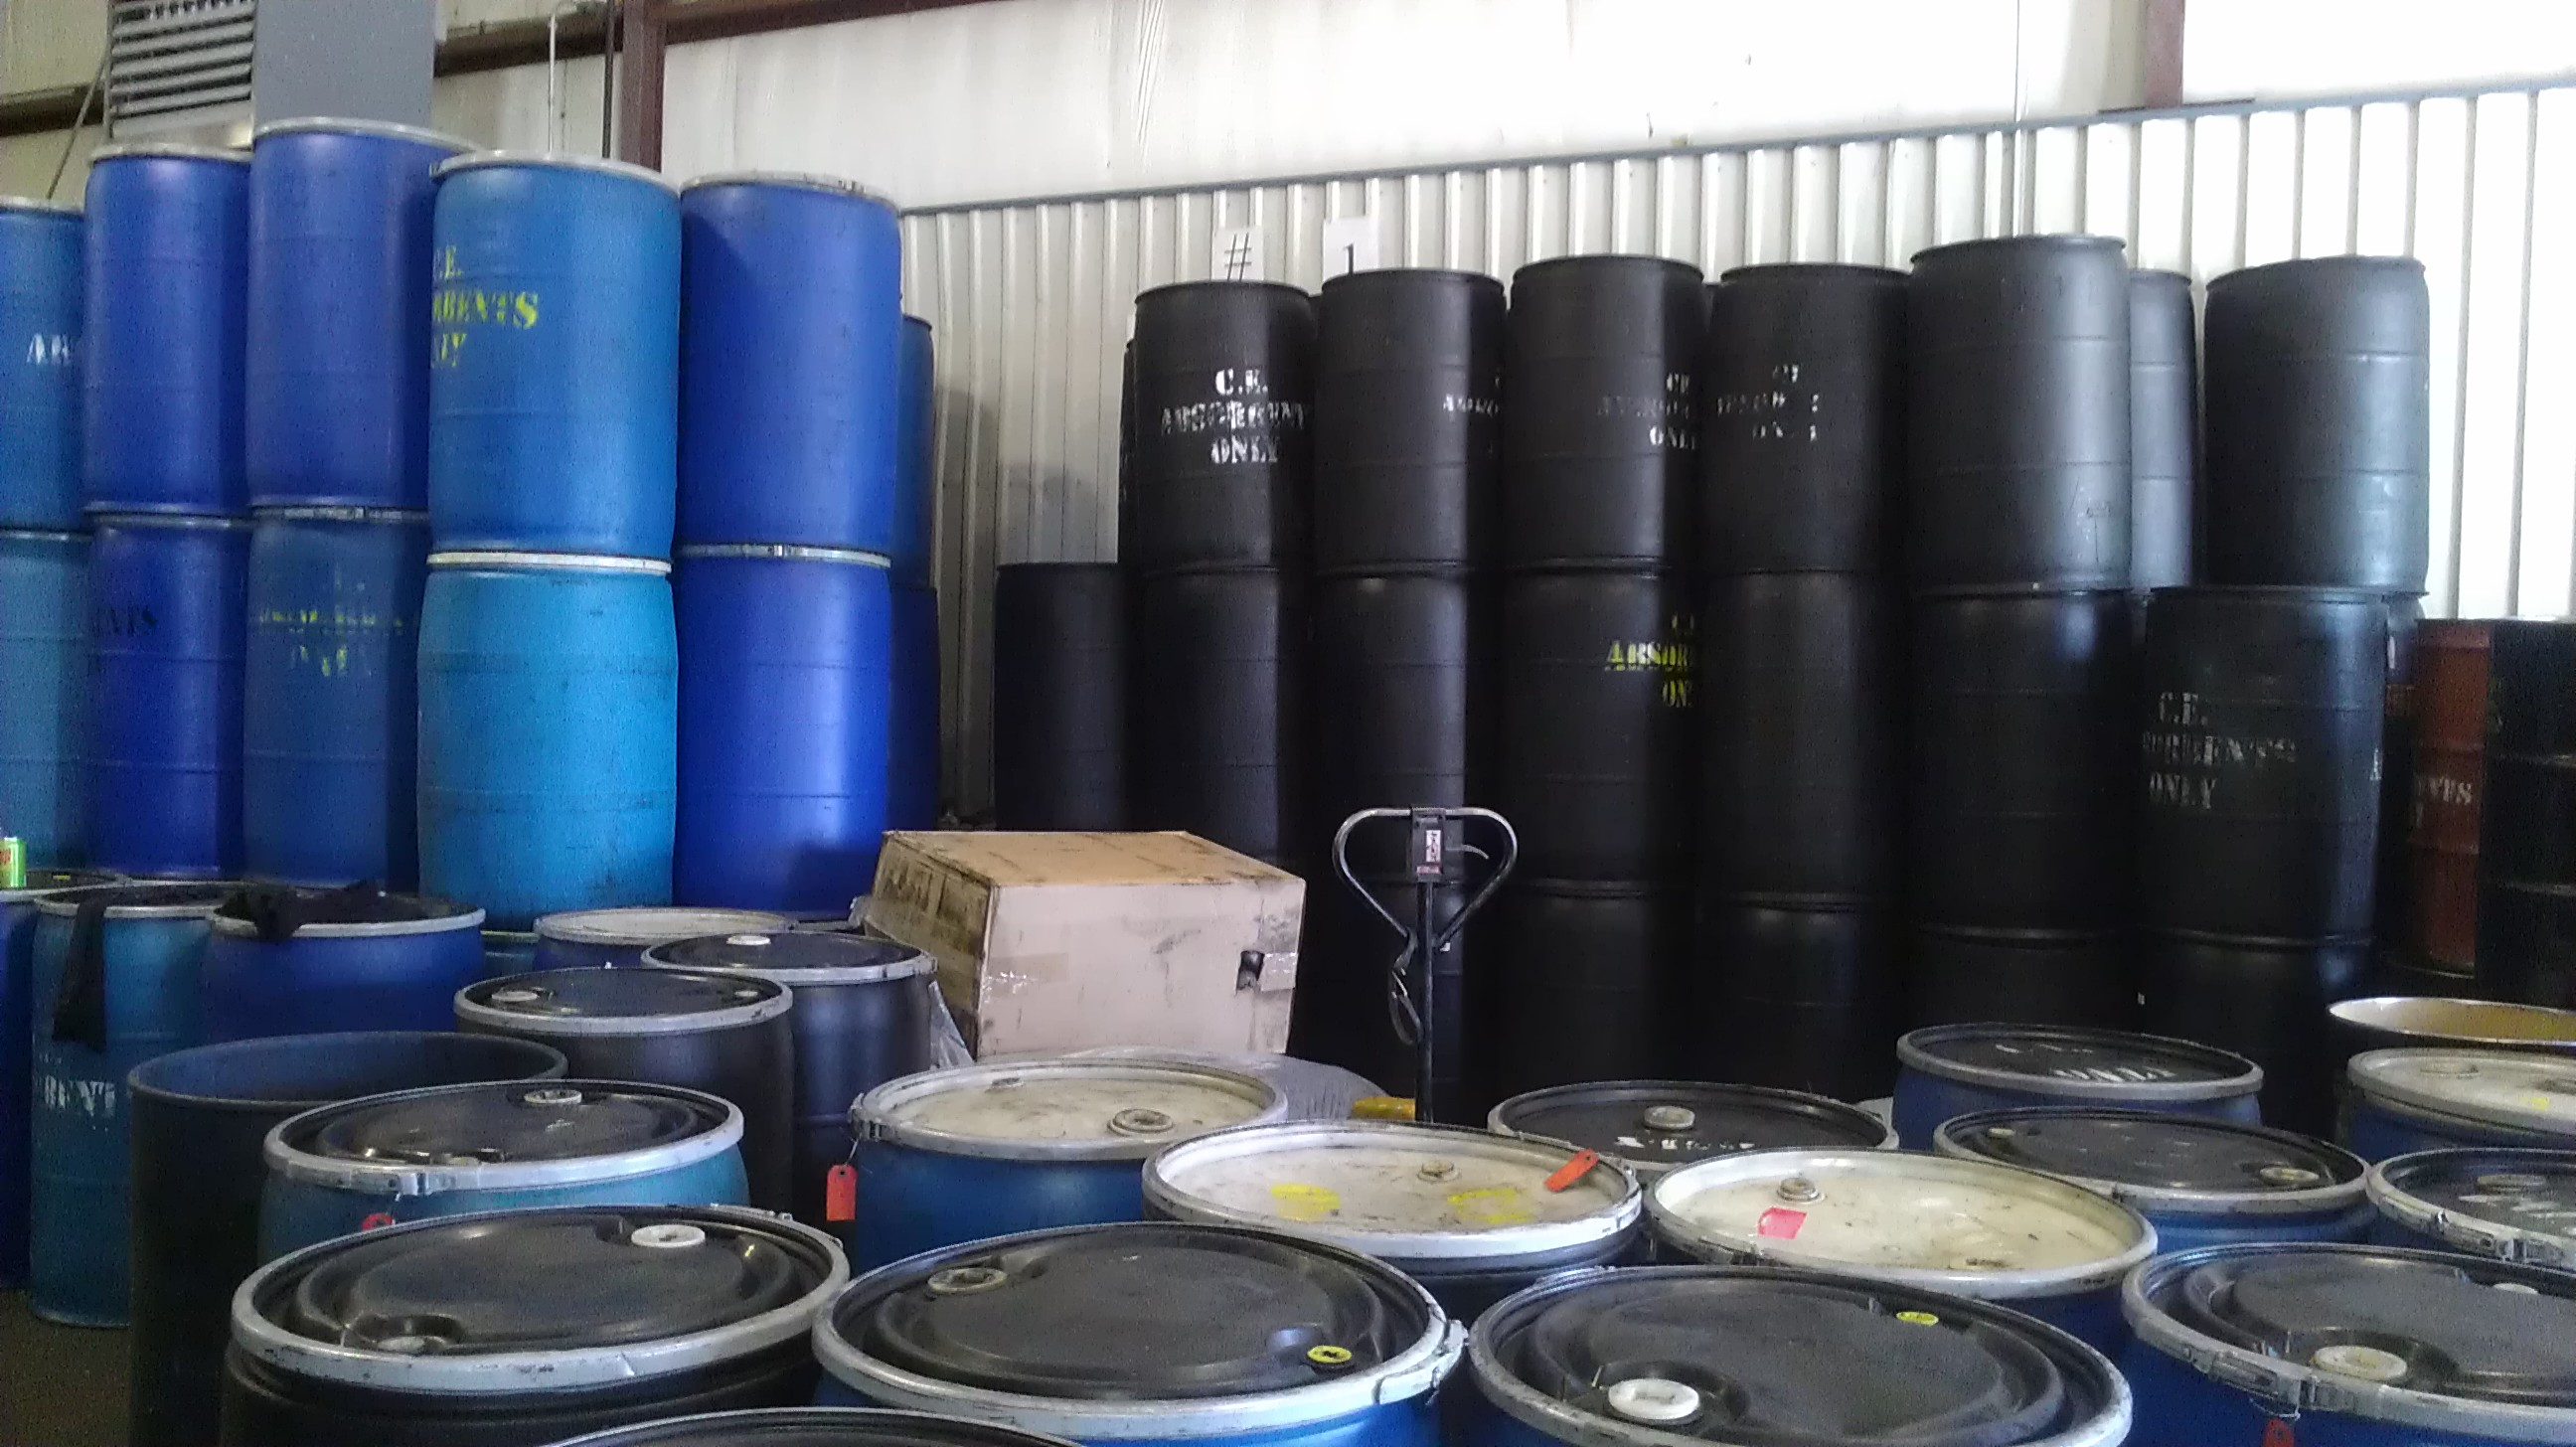 Waste Oil Recycling Oil Recycling Hazardous Waste